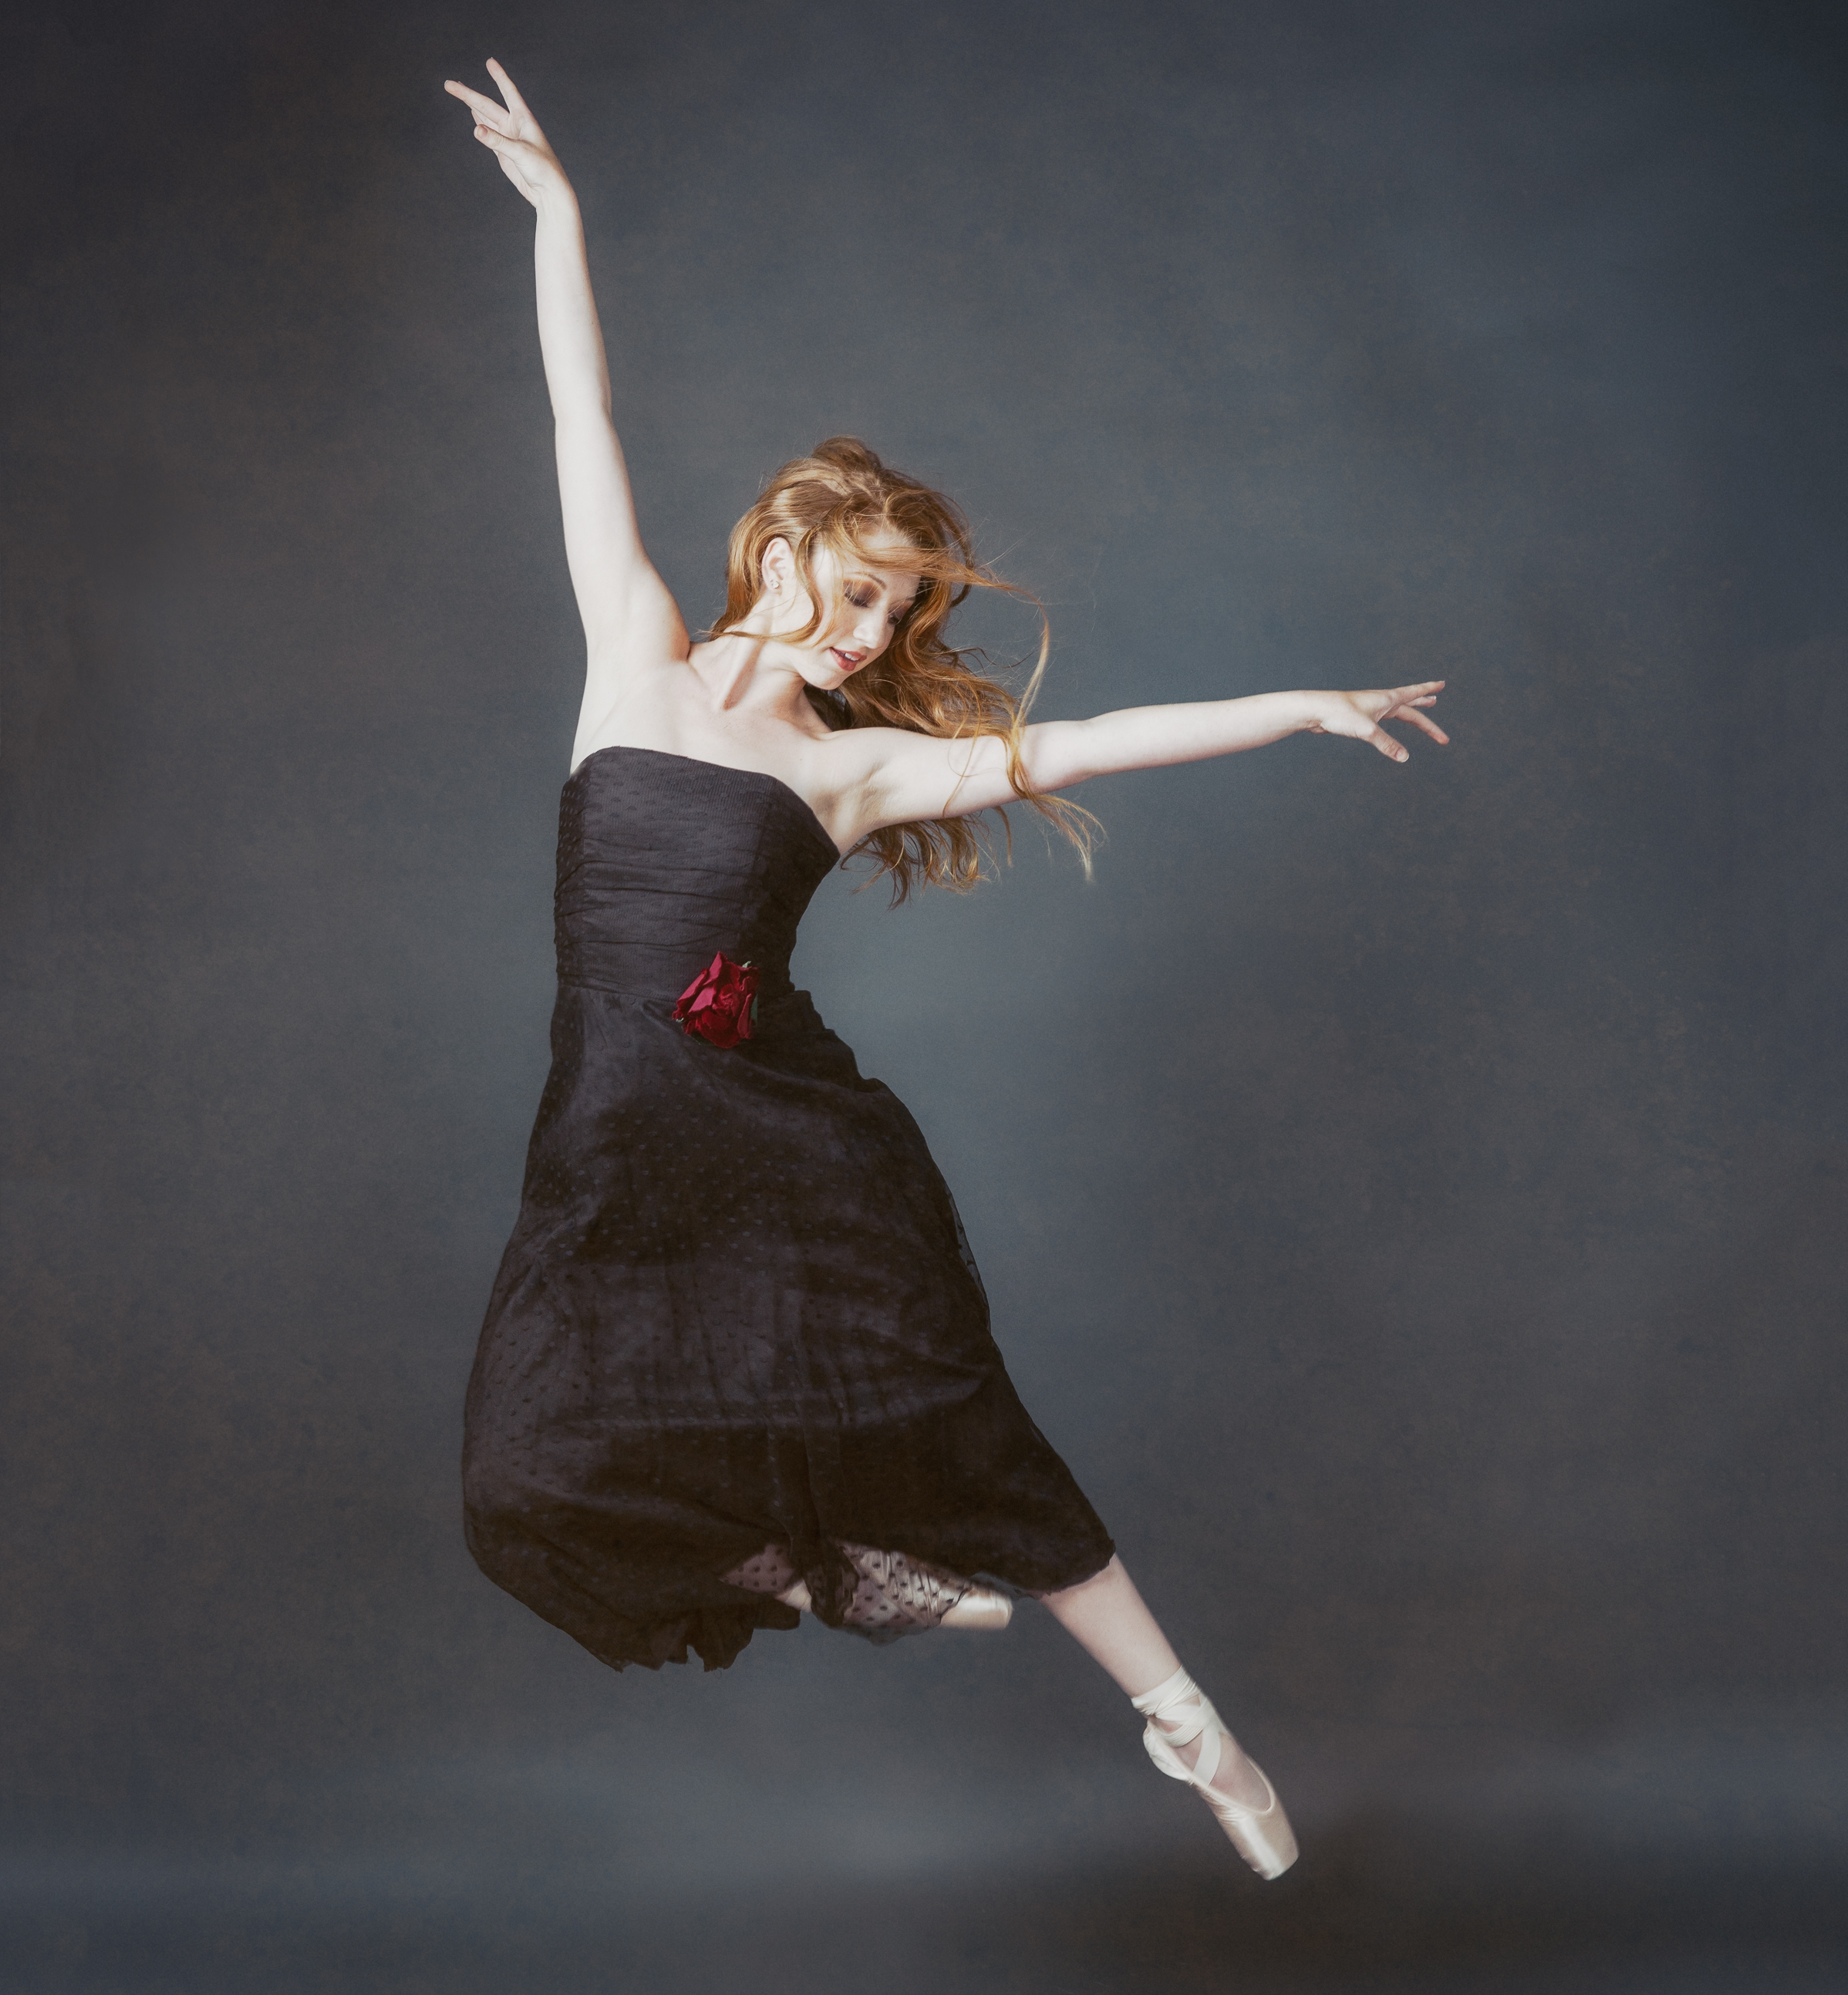 THE DANCE PHOTOSHOOT - Capturing your grace and dedication in a portrait